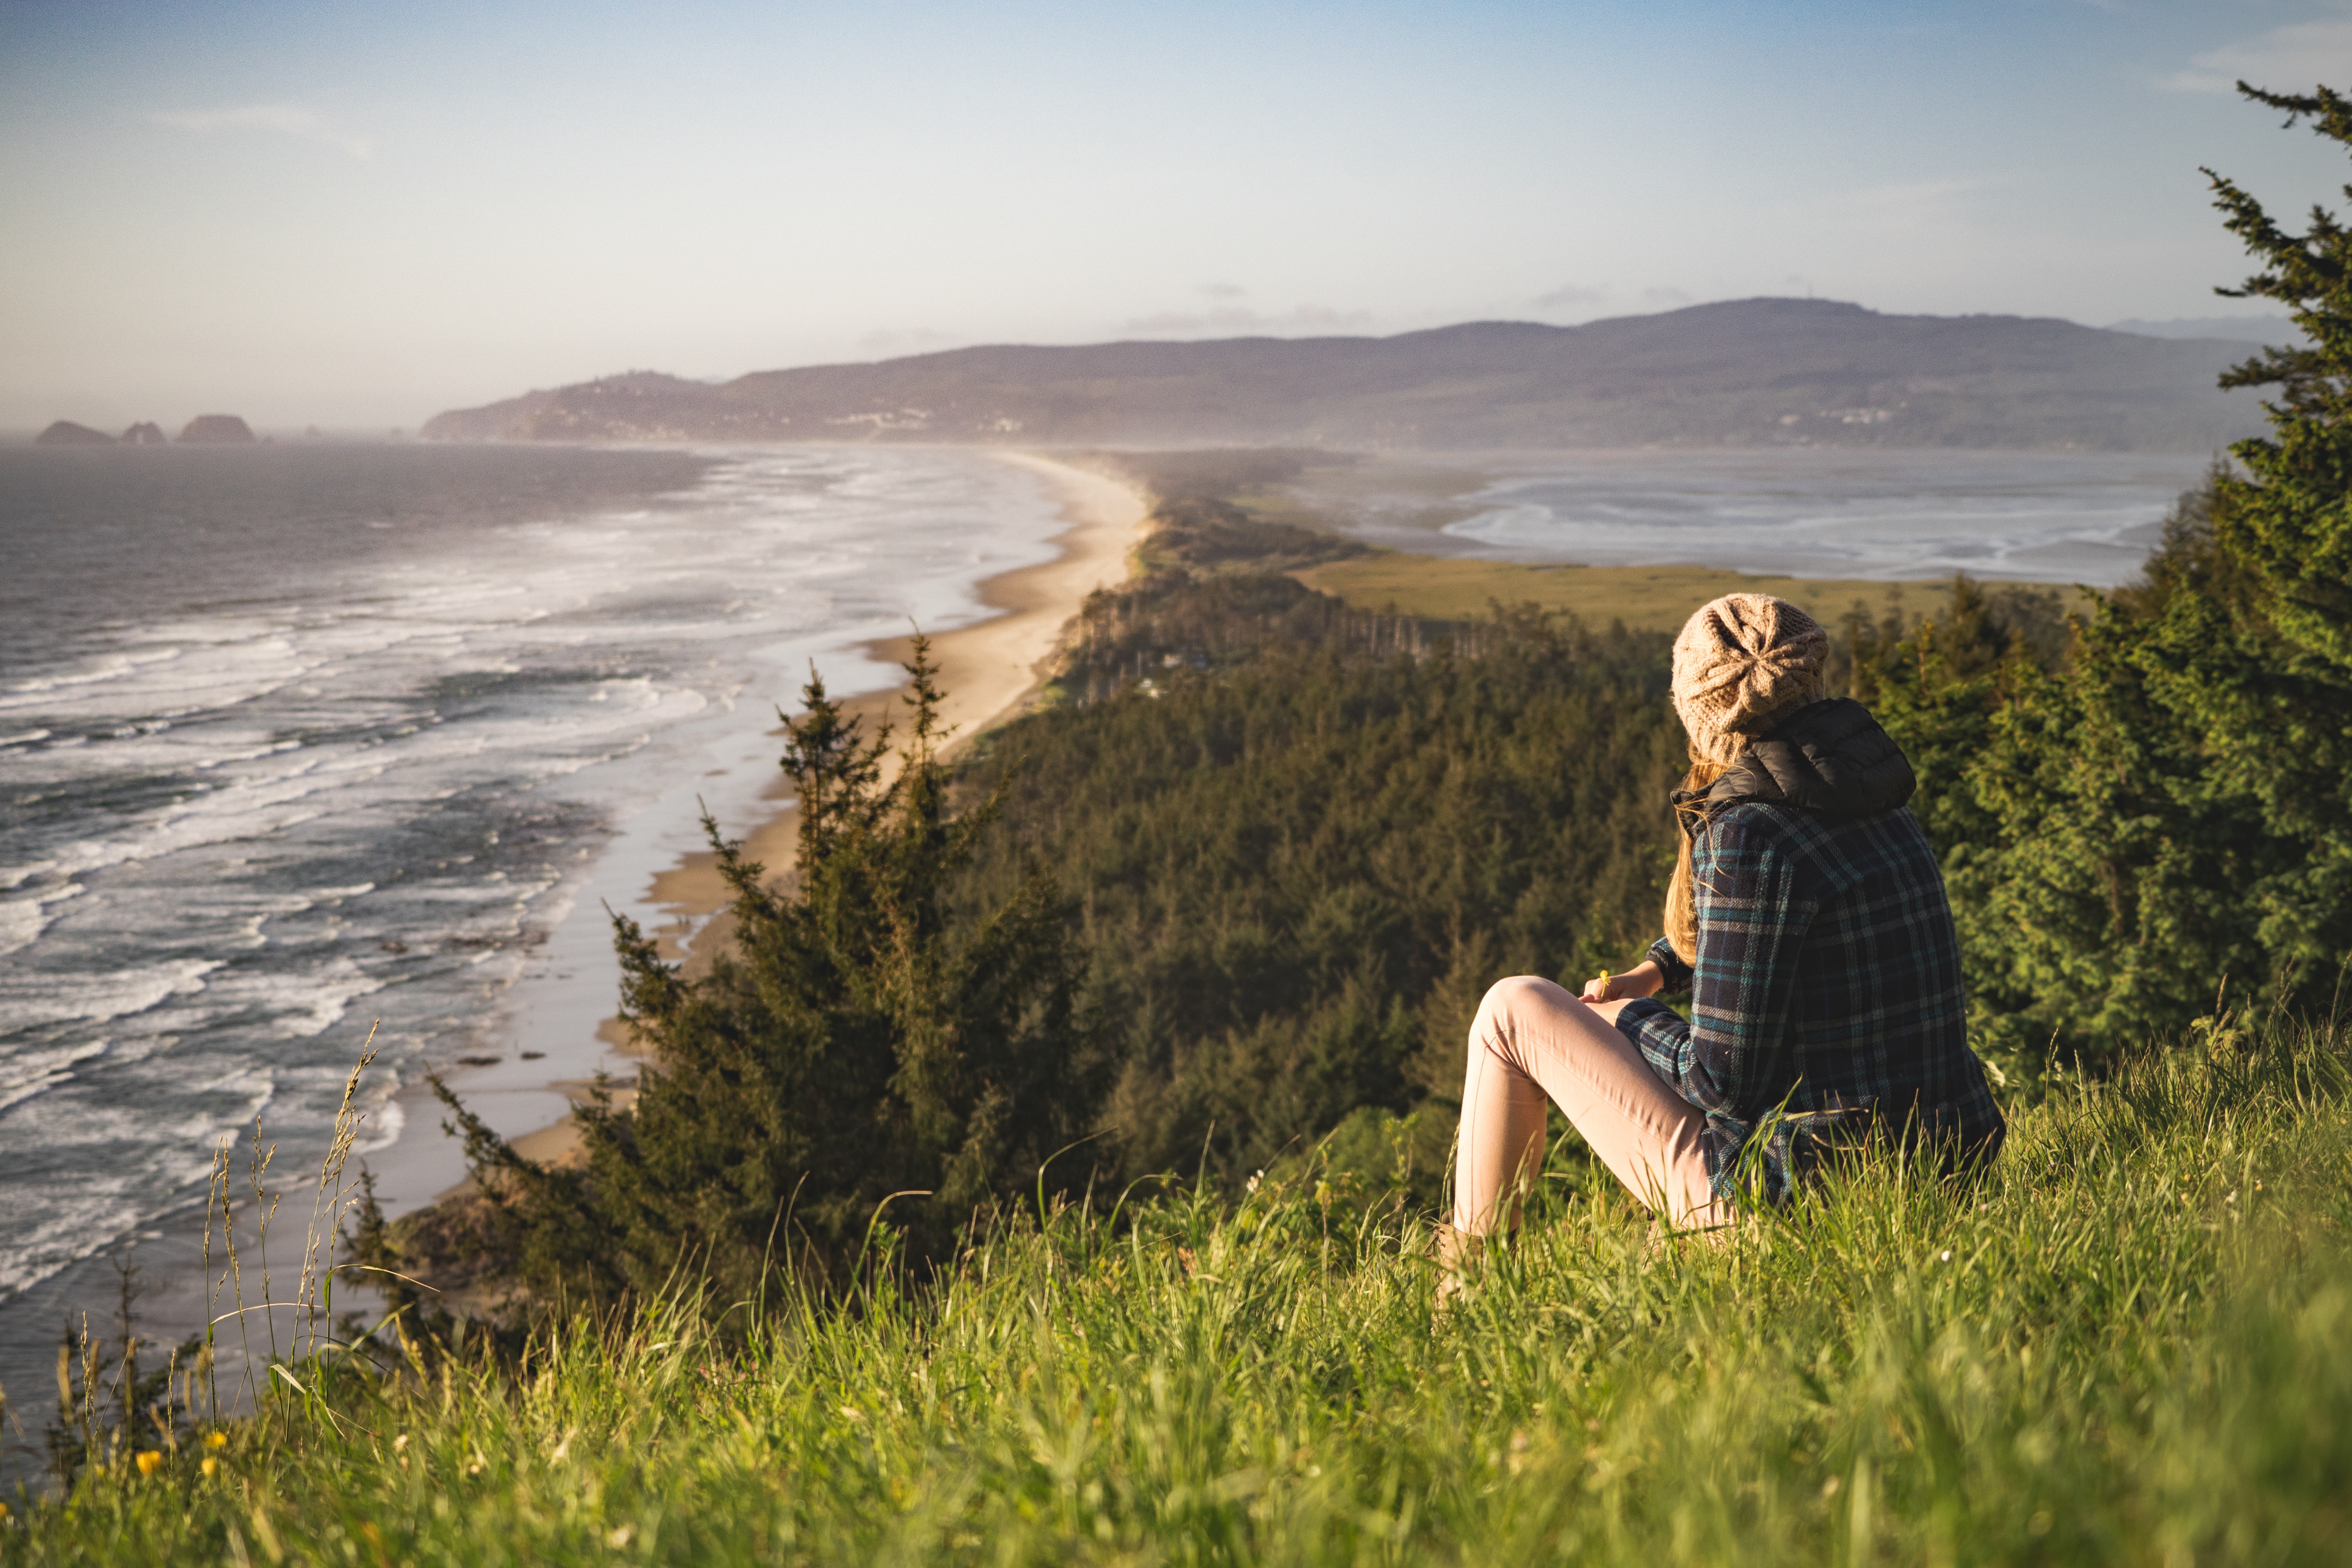 A woman in a coat and hat sitting on a grassy hill looking over the beach